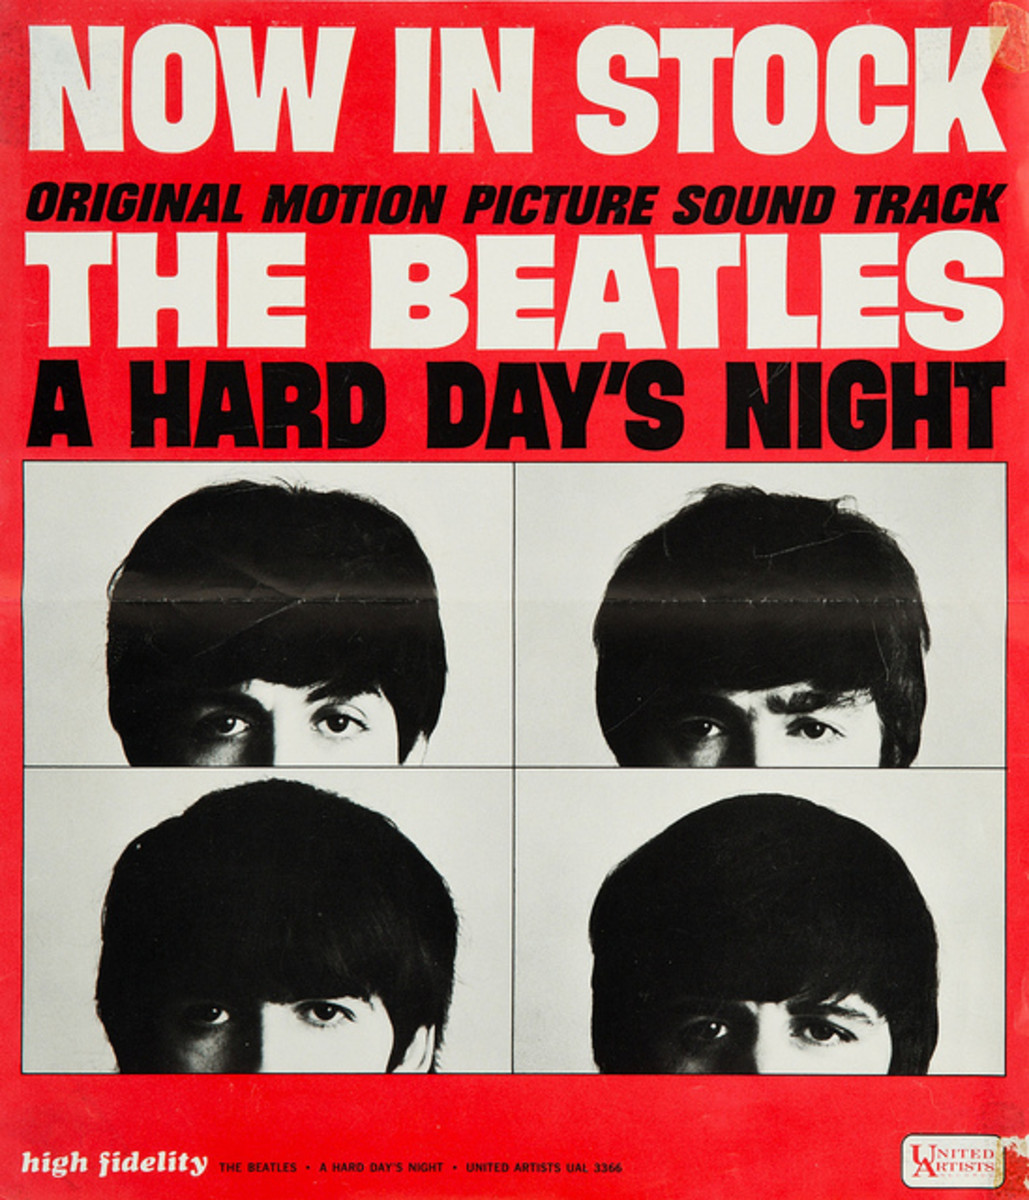 "The Beatles ""A Hard Days Night"" United Artist Records UAS 6366 (1964) Promotional Poster for the Movie Soundtrack."